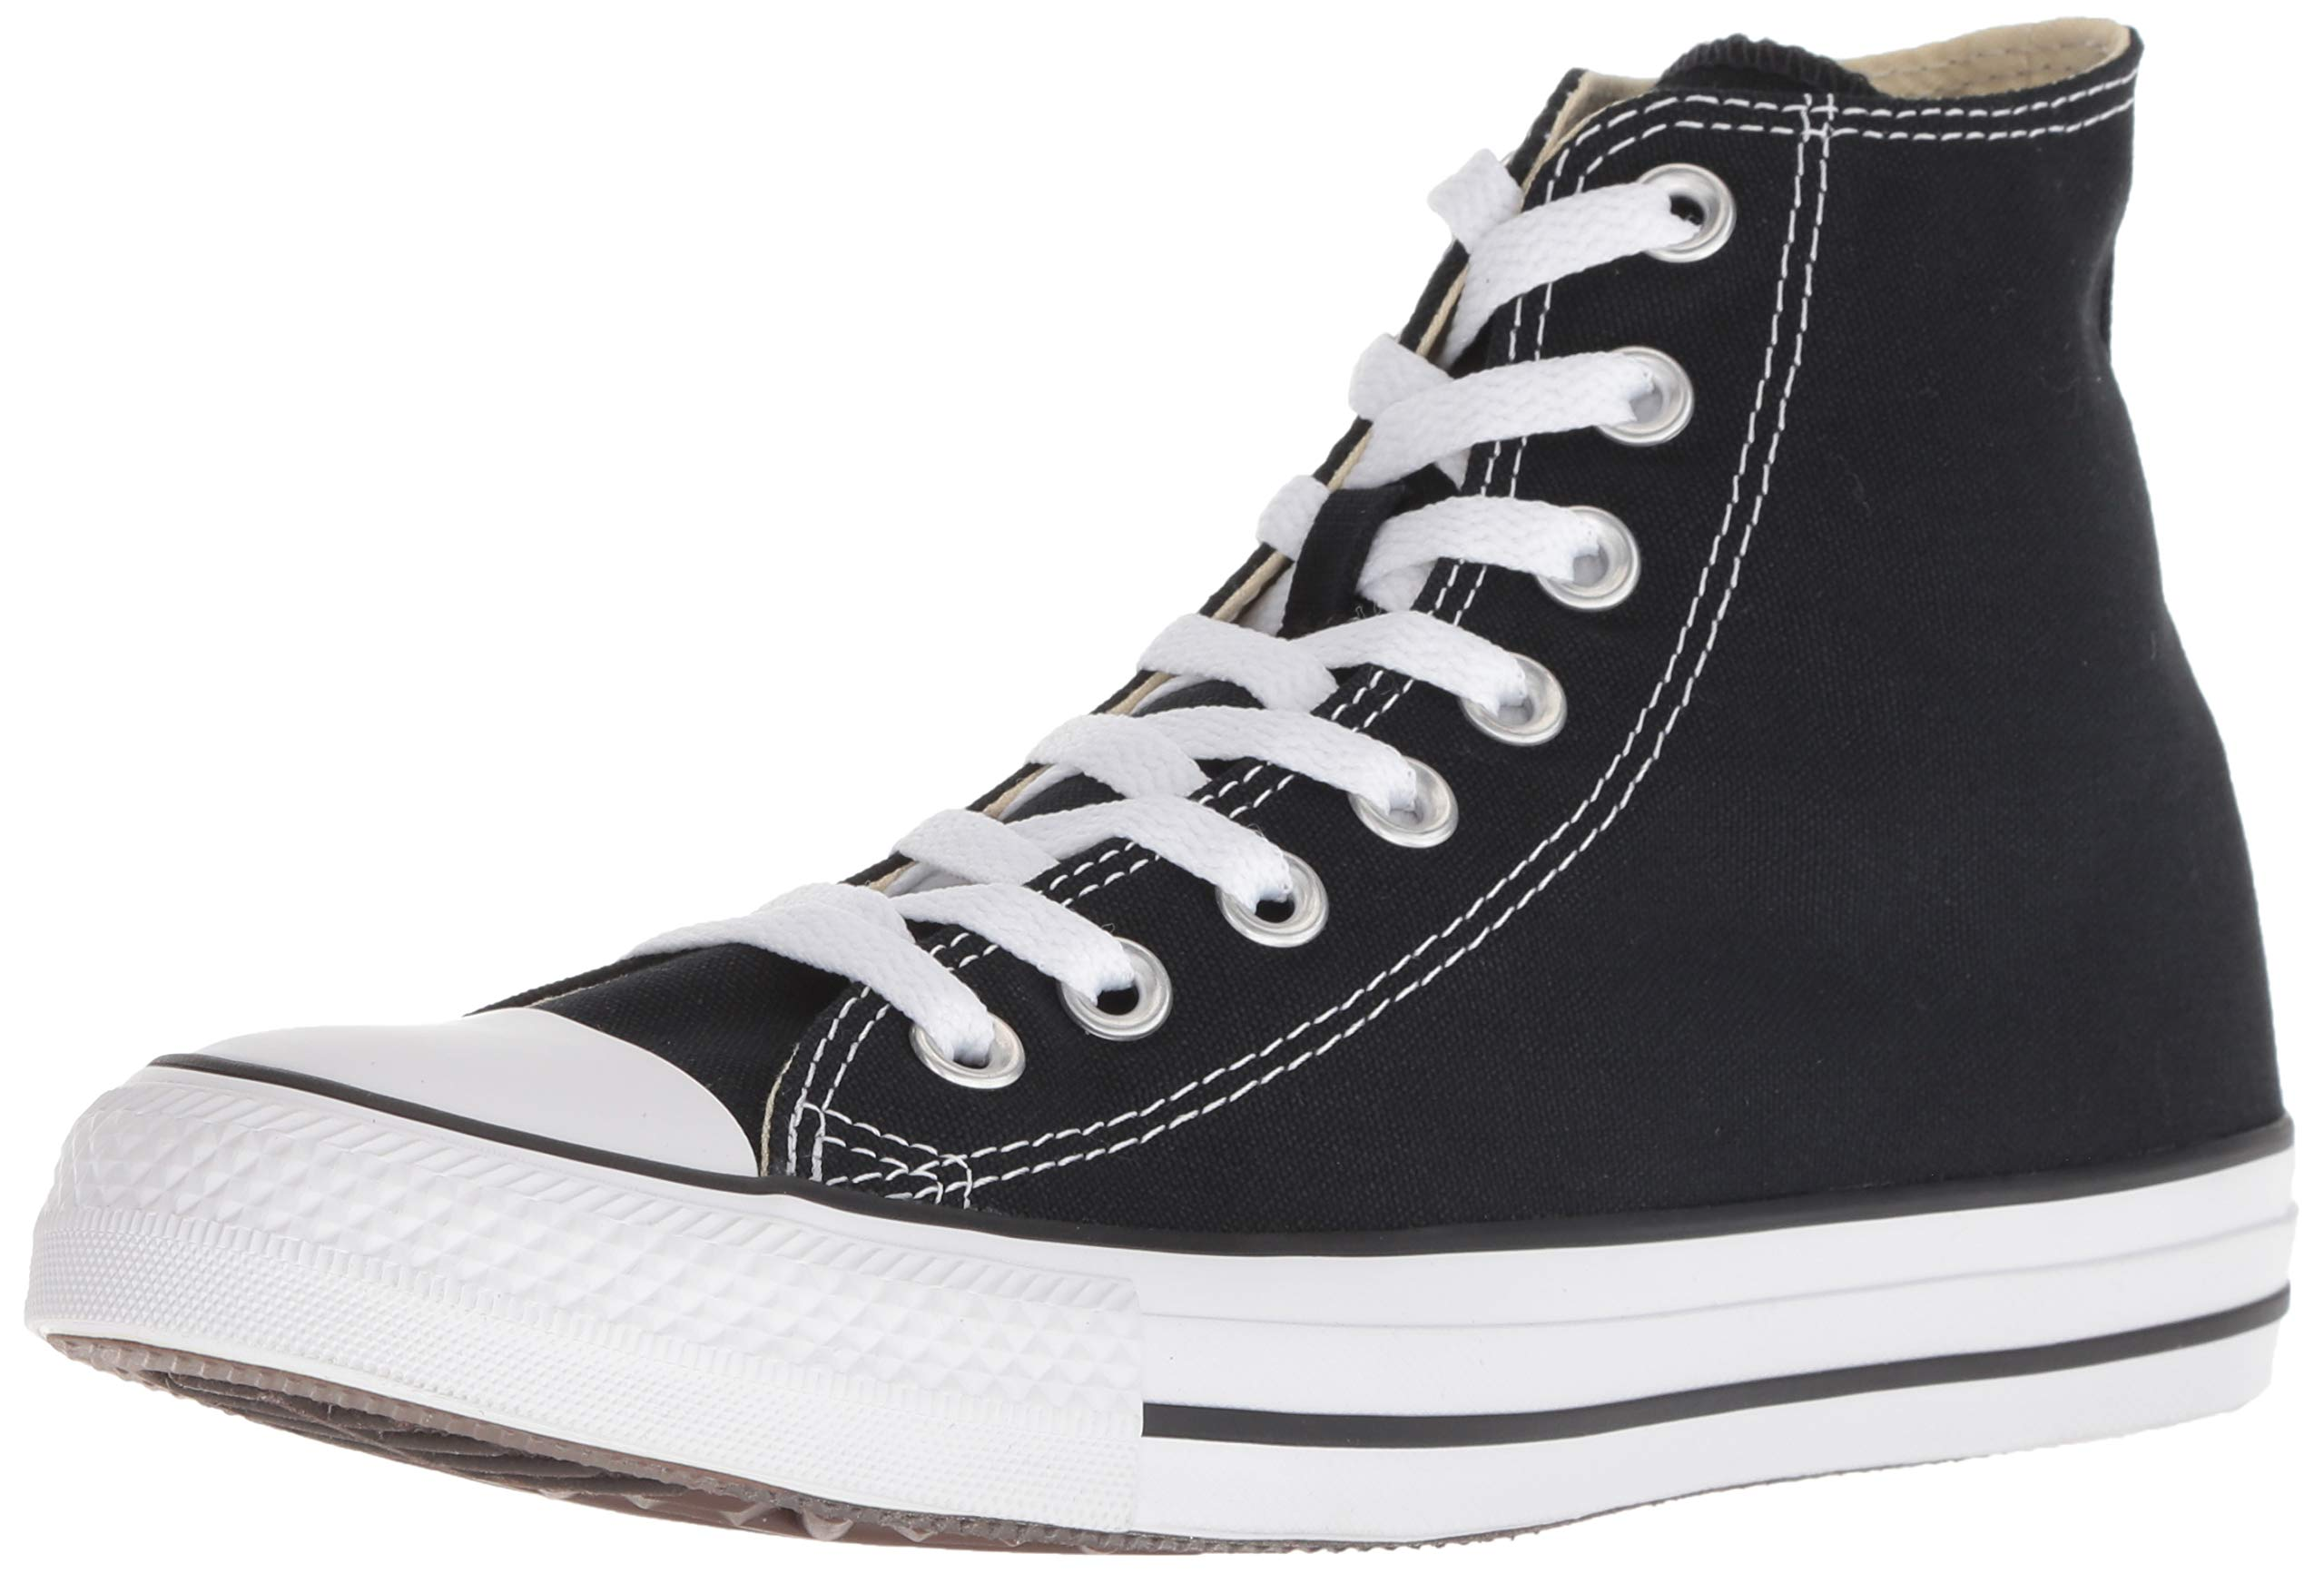 converse uk black and white